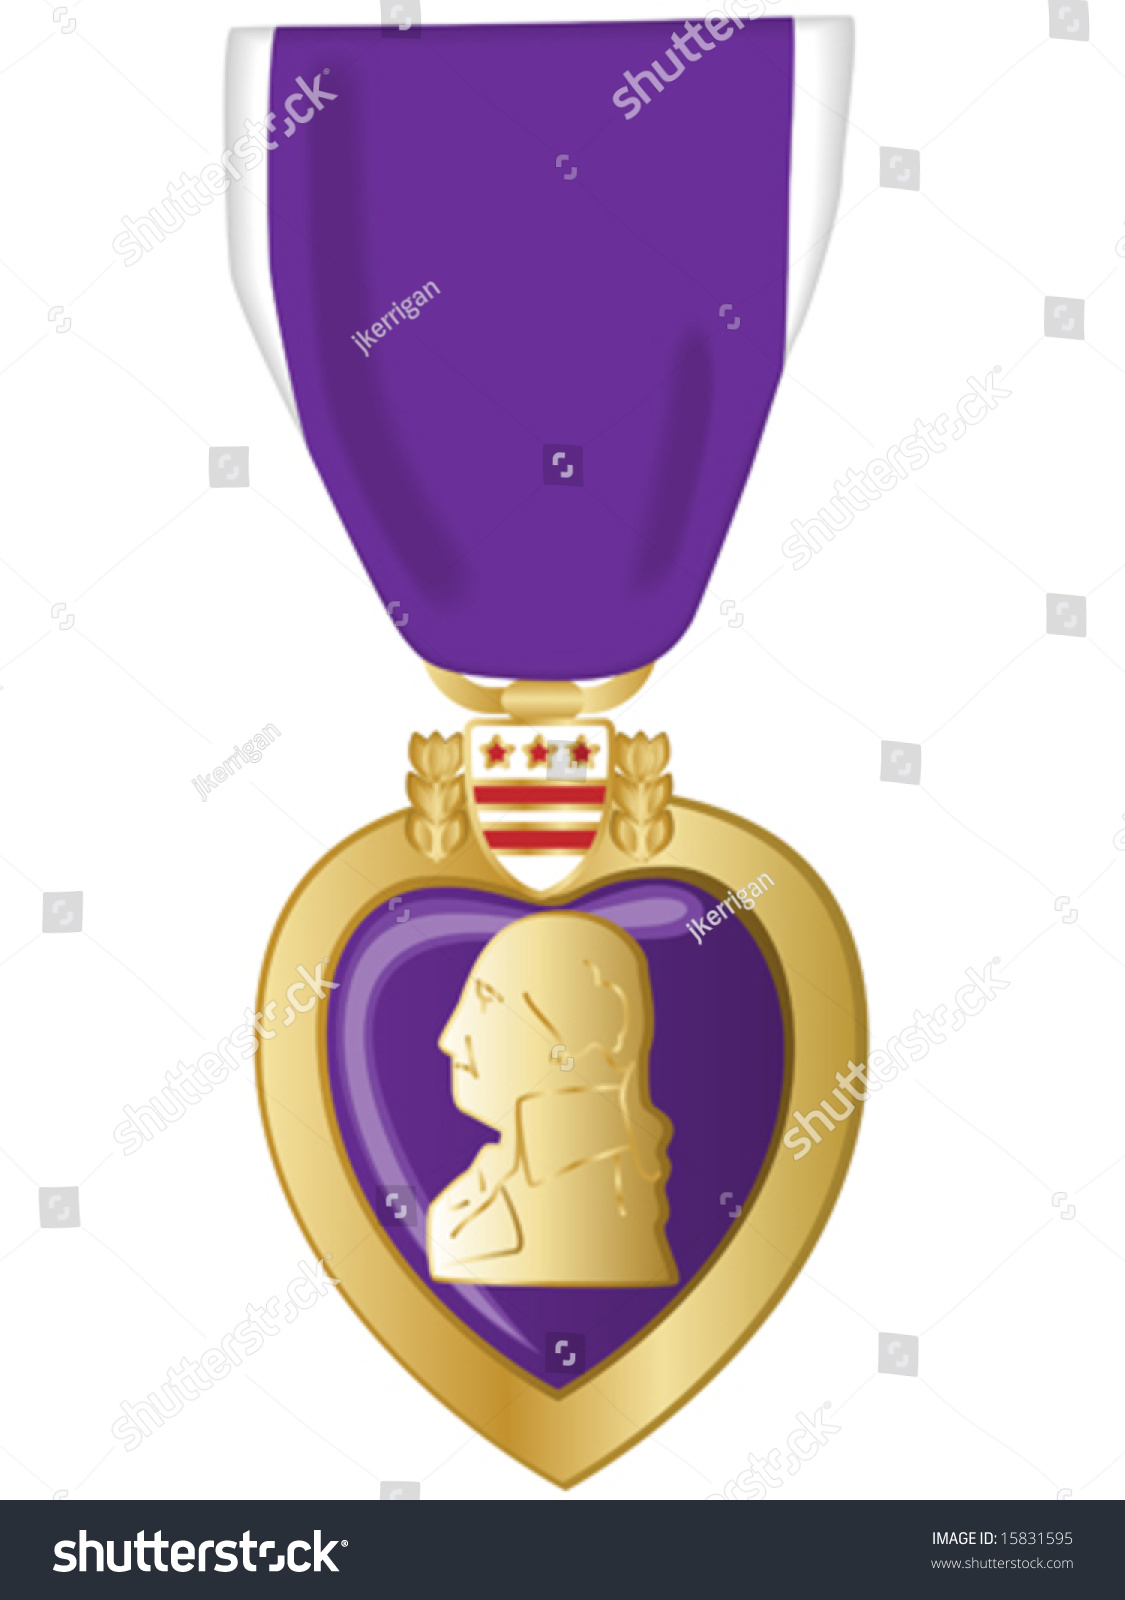 Vector Illustration Of Purple Heart Medal. - 15831595 ...